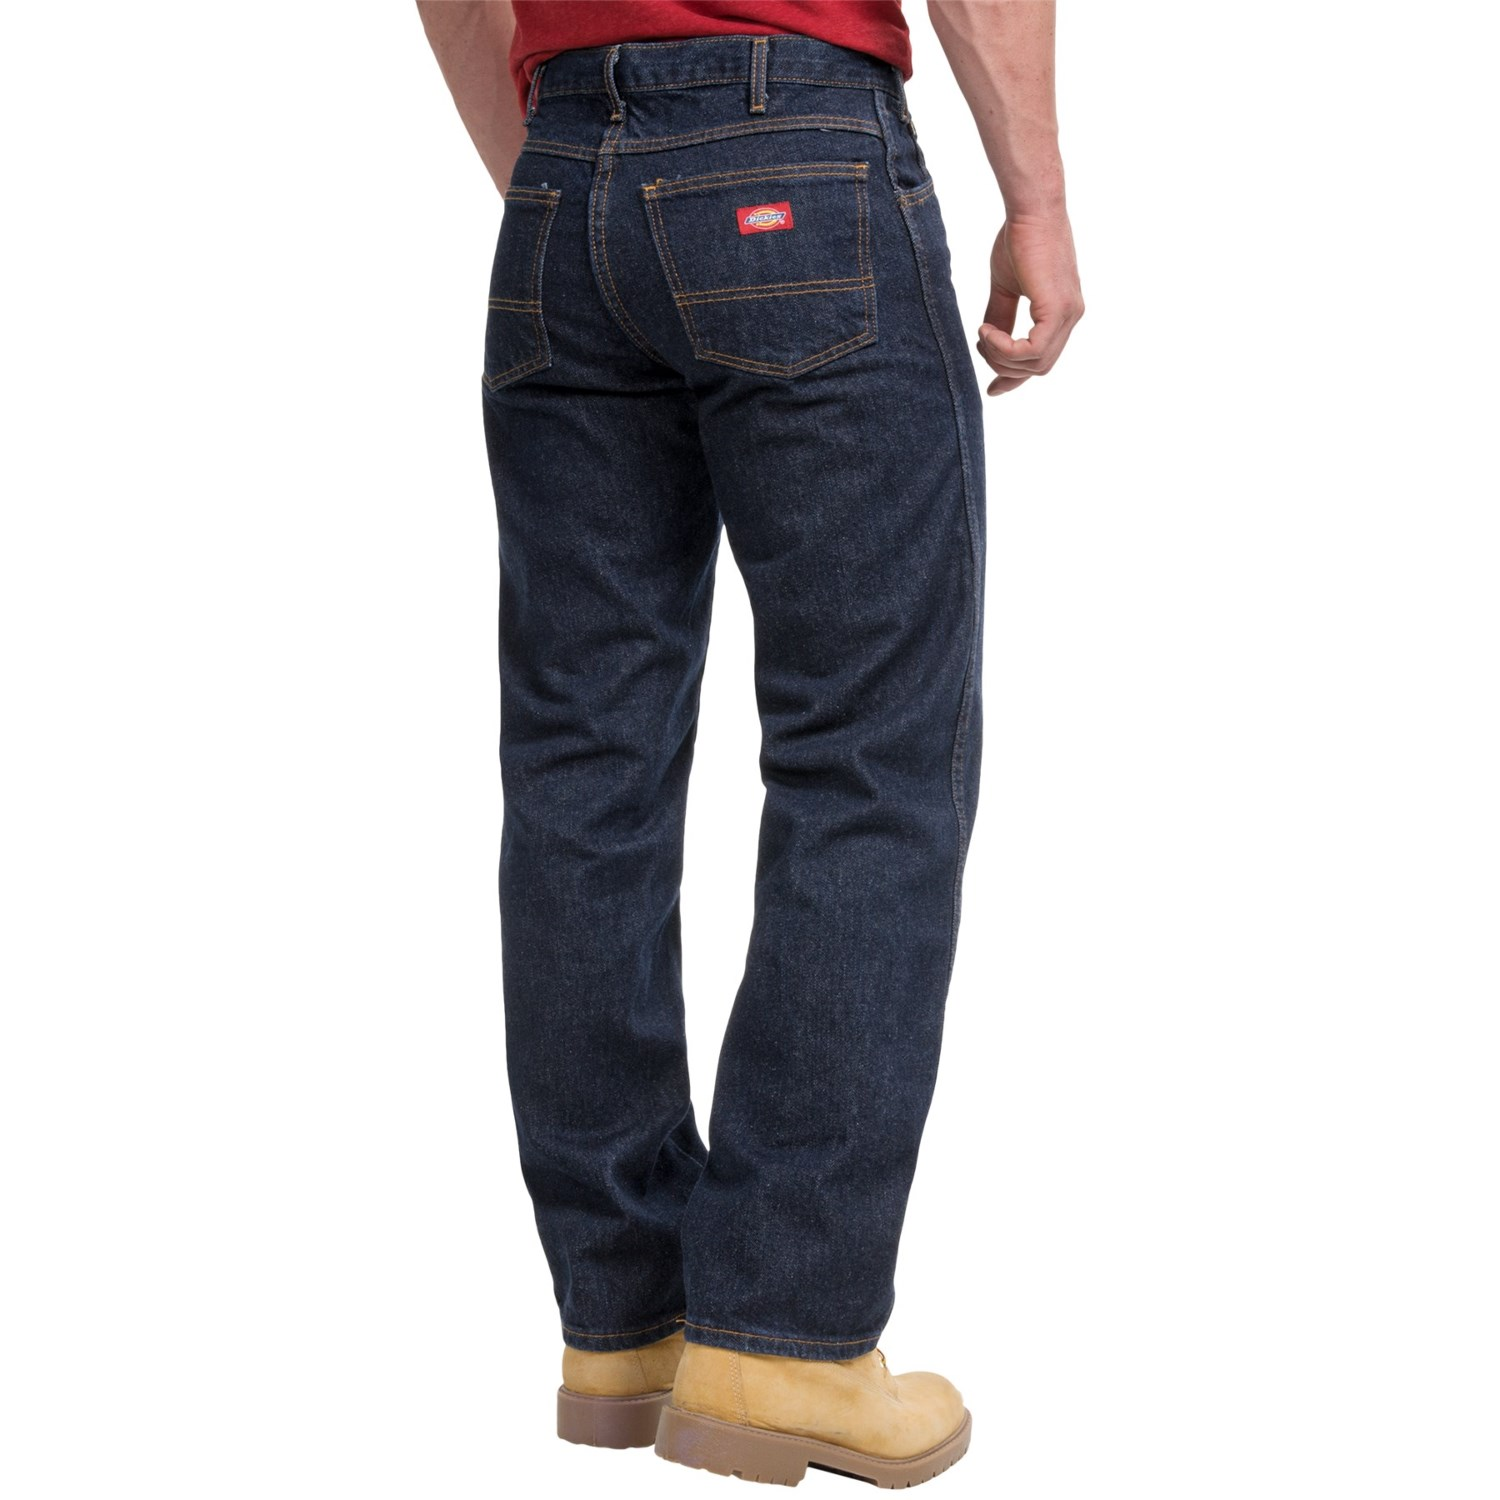 / Mens Regular Jeans. Wrangler. Men's Regular Fit Jeans. Average rating: out of 5 stars, based on reviews reviews. Wrangler. Walmart # This button opens a dialog that displays additional images for this product with the option to zoom in or out. Tell us if something is incorrect/5(K).